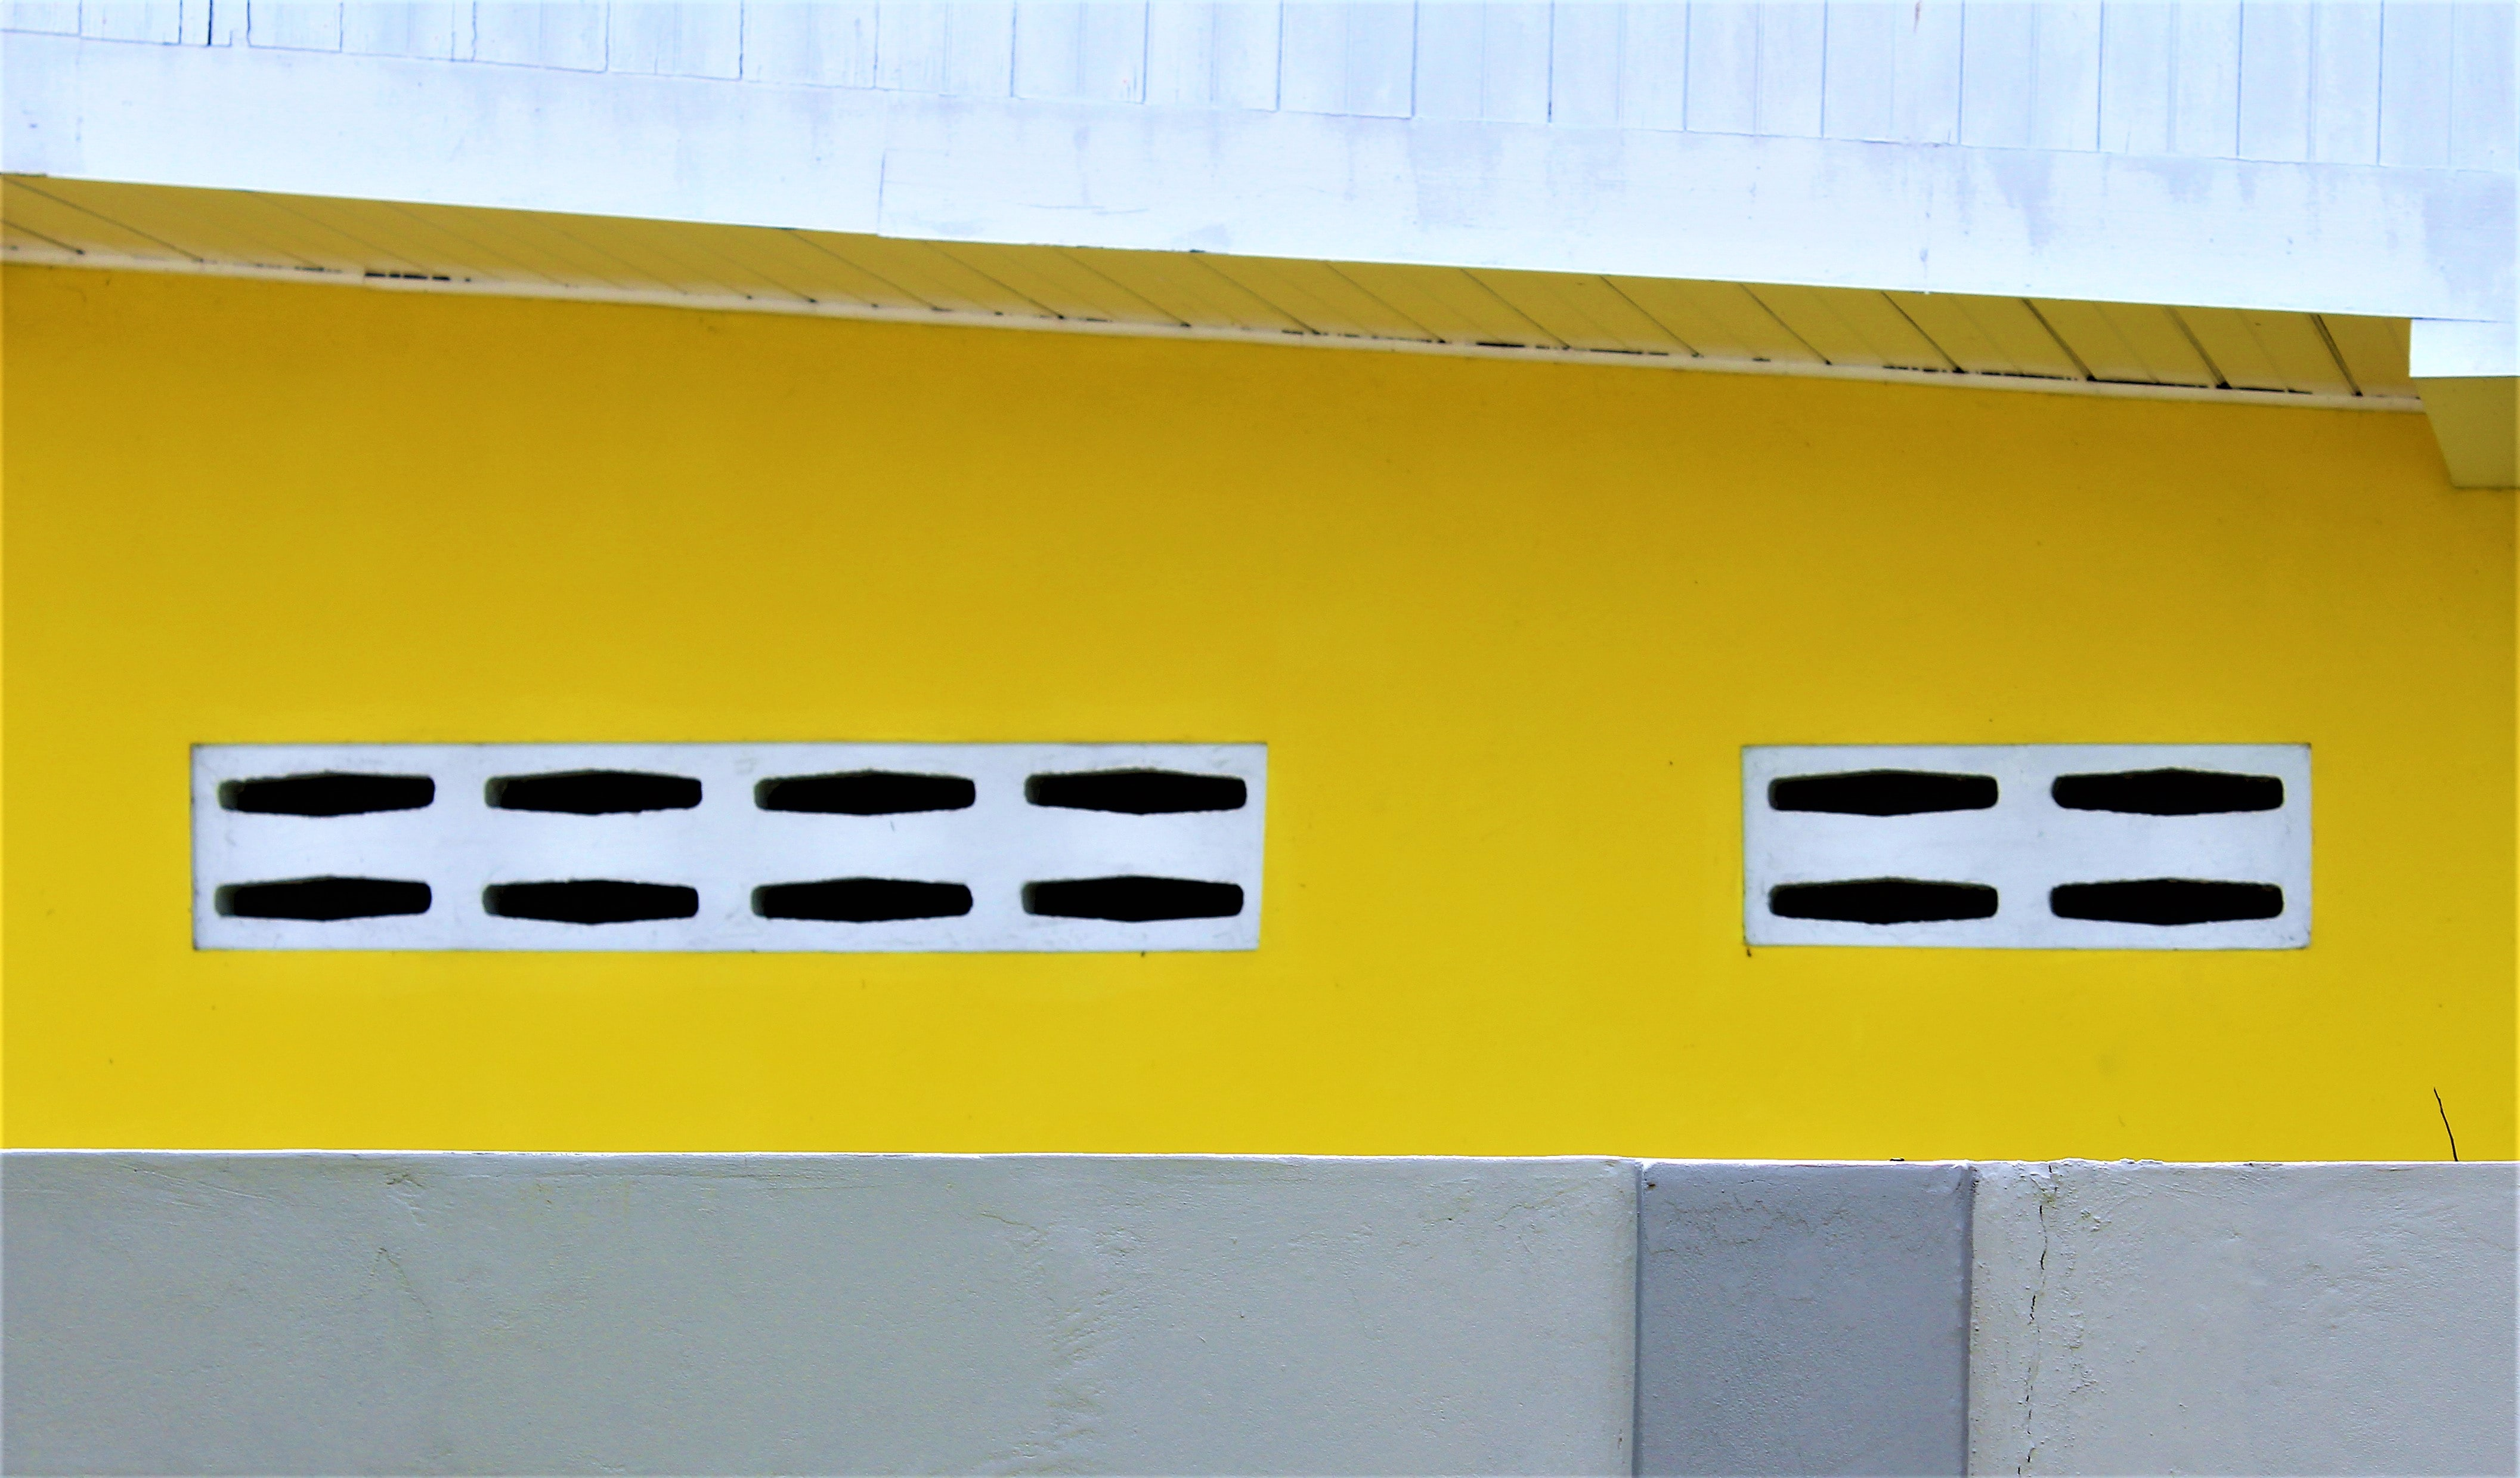 yellow and white surface